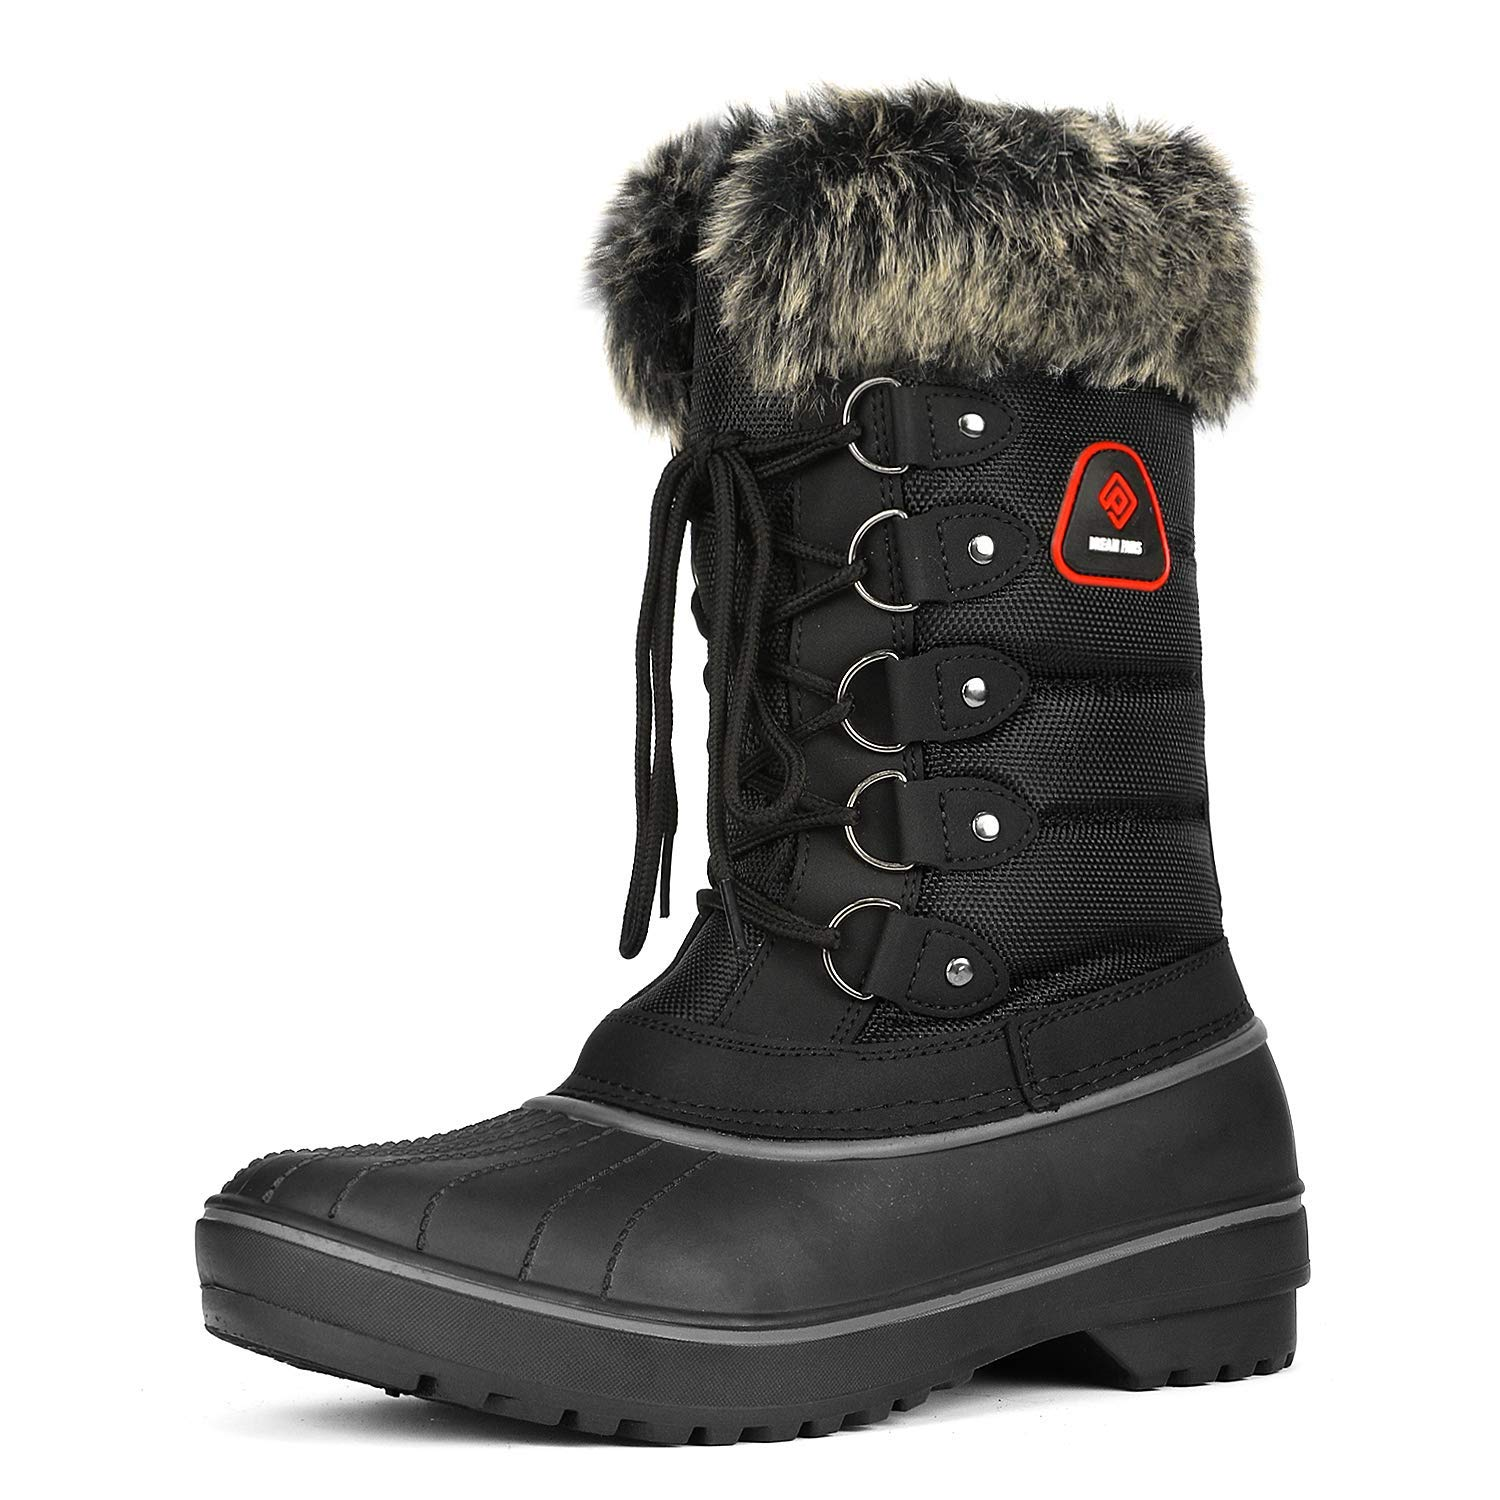 DREAM PAIRS Women's DP-Canada Black Faux Fur Lined Mid Calf Winter Snow Boots Size 9 M US by DREAM PAIRS